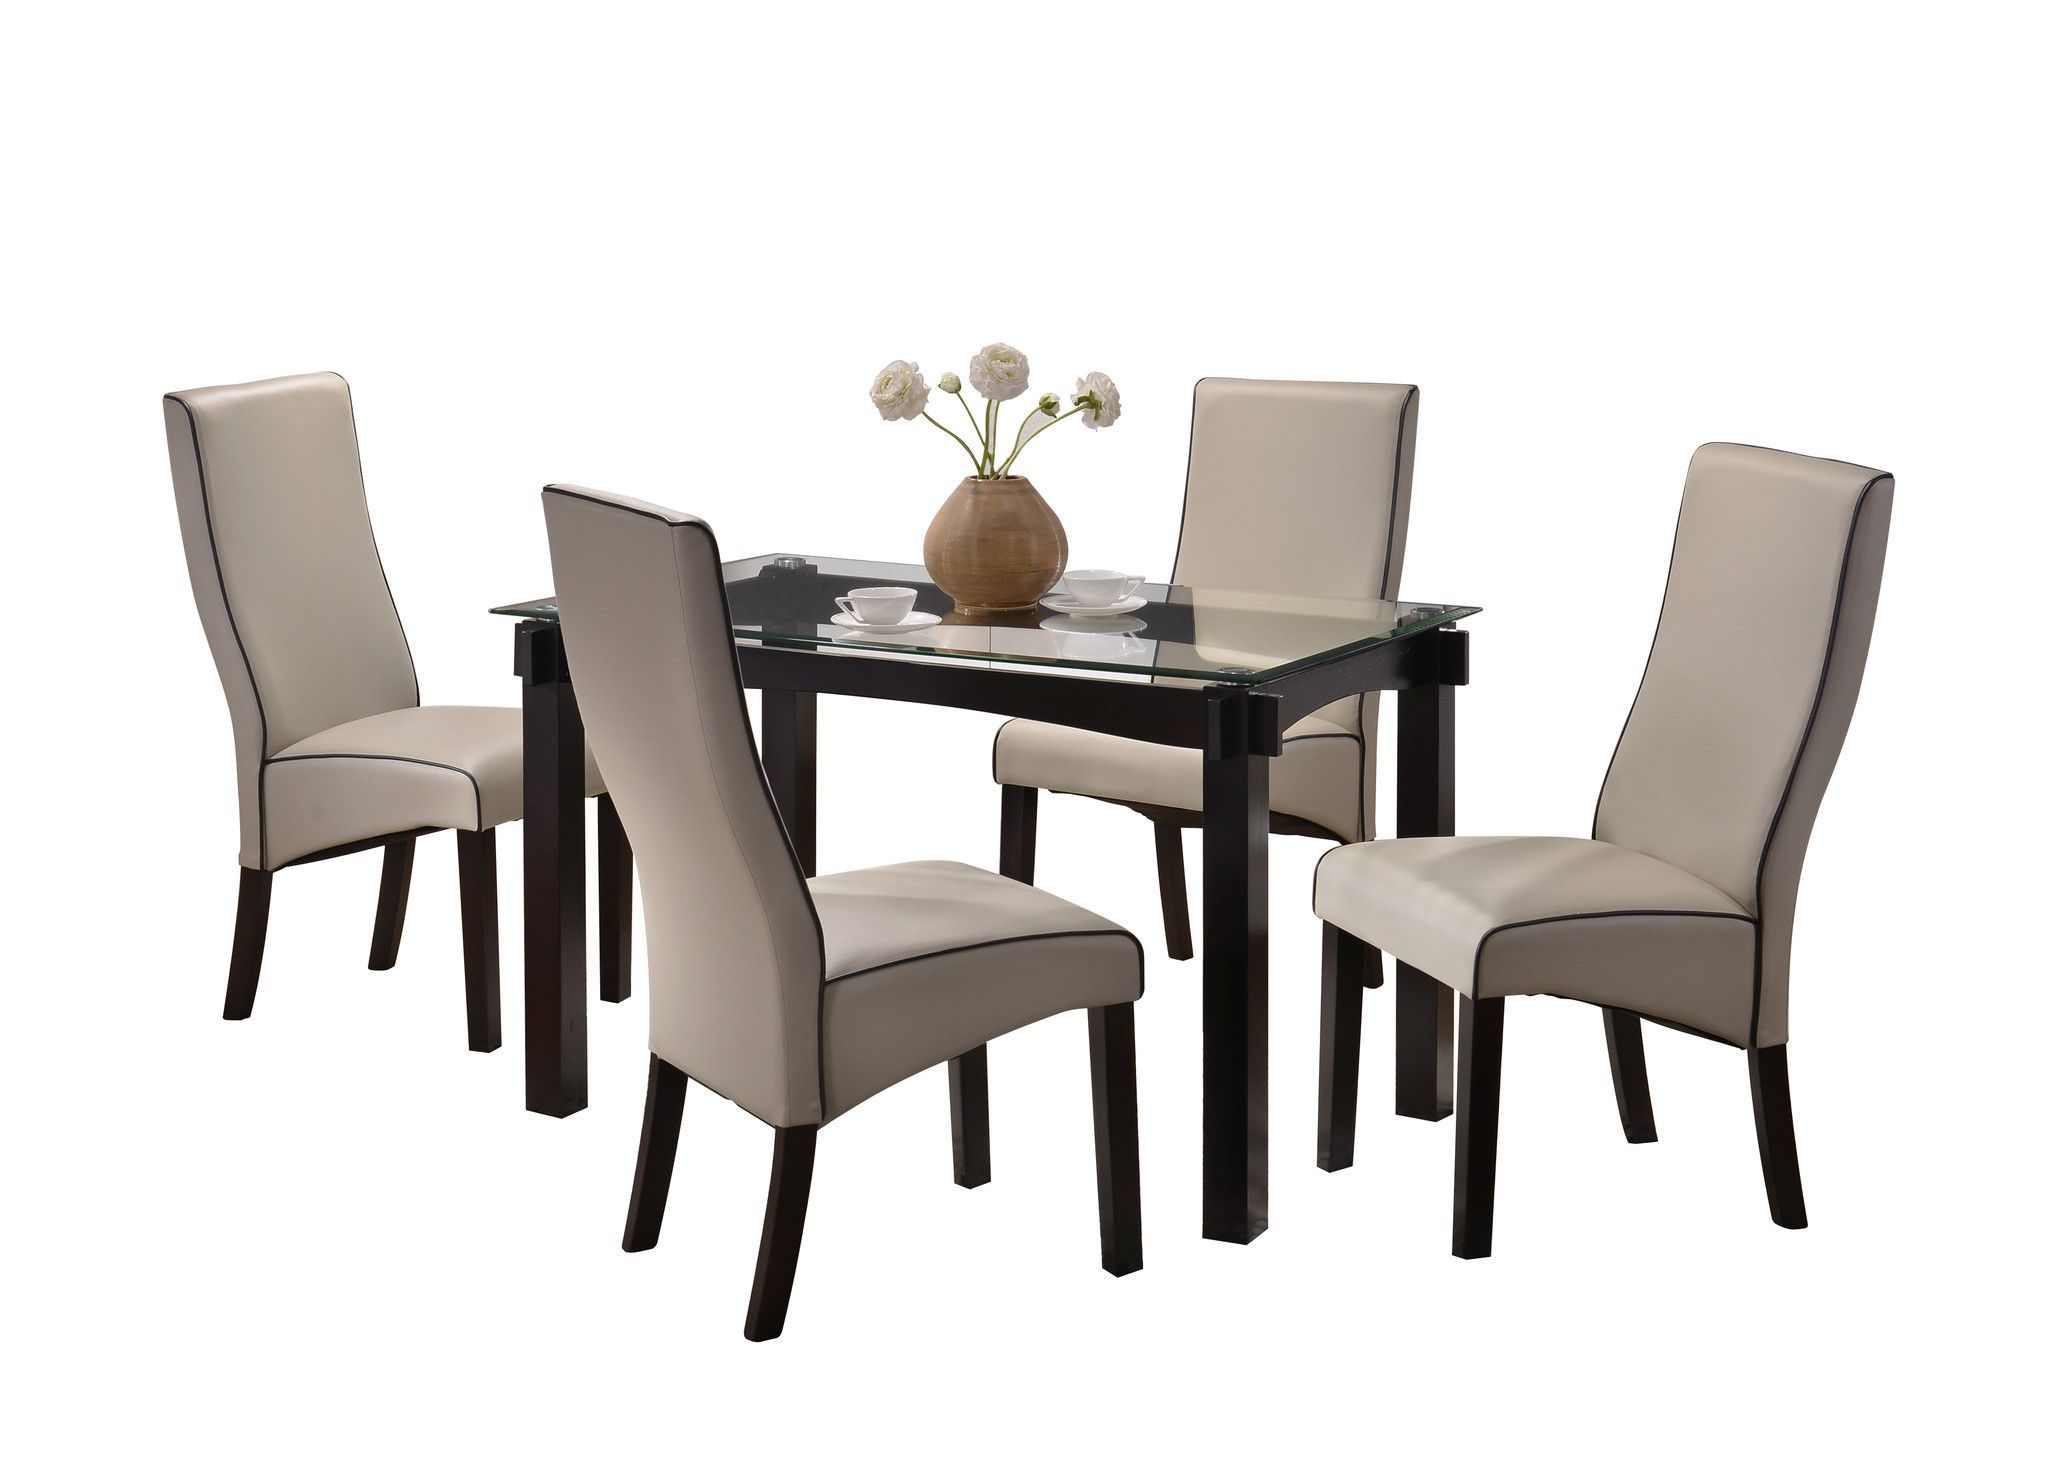 Pilaster designs wood and glass dining dinette set table u